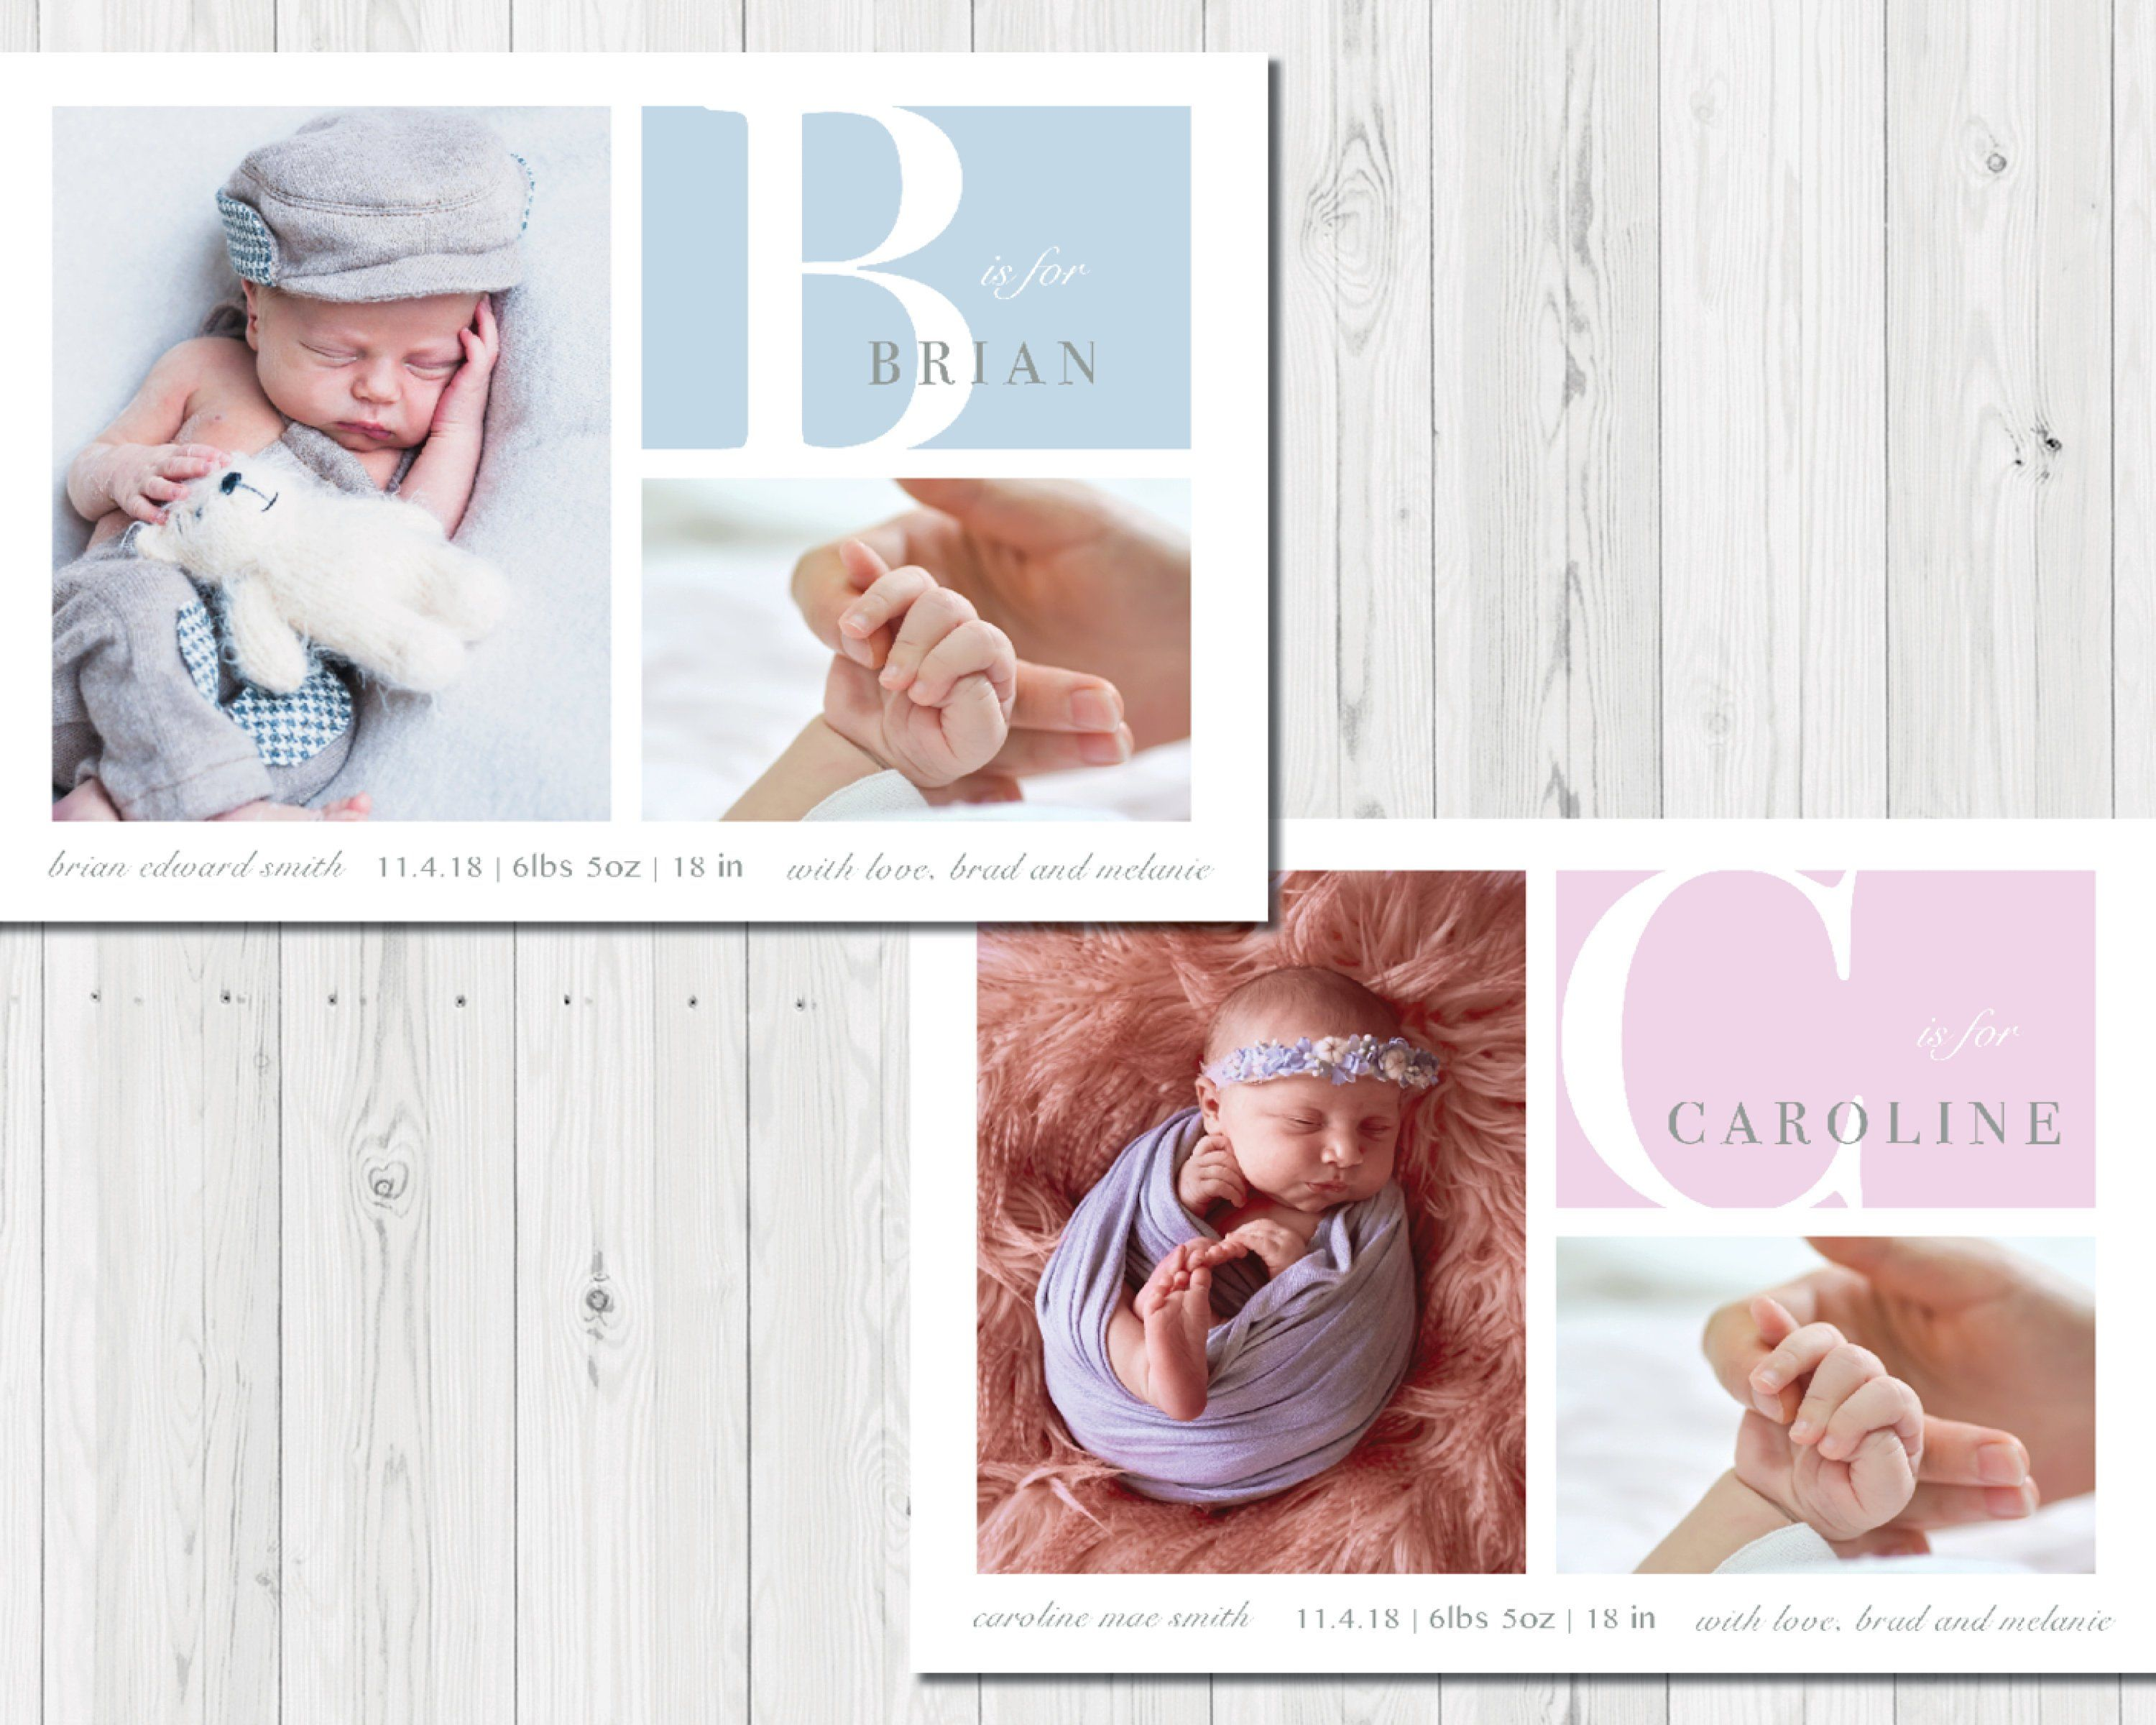 Birth Announcement - Blue or Pink Baby Announcement - Newborn 5x7 card -  PRINTABLE DOWNLOAD https